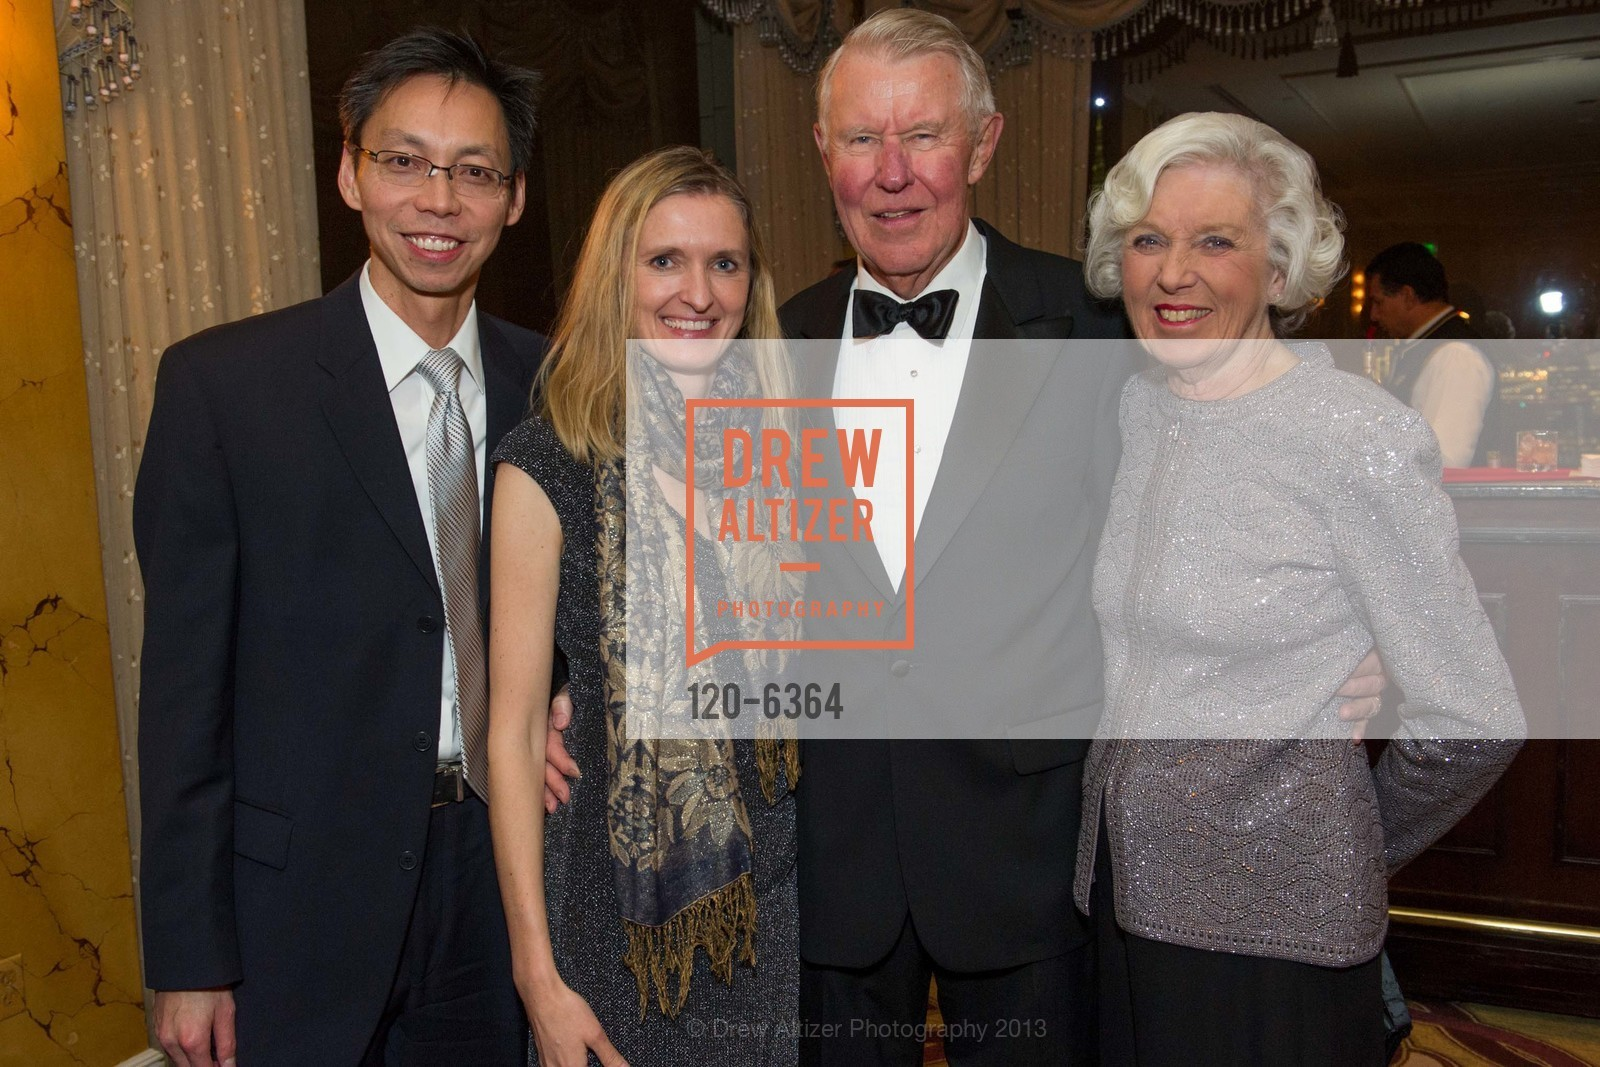 Peter Teng, Marzena Jurek, Norm Wallin, Katherine Wallin, 25th Anniversary Holiday HOB NOB ON THE HILL, US, December 6th, 2013,Drew Altizer, Drew Altizer Photography, full-service agency, private events, San Francisco photographer, photographer california